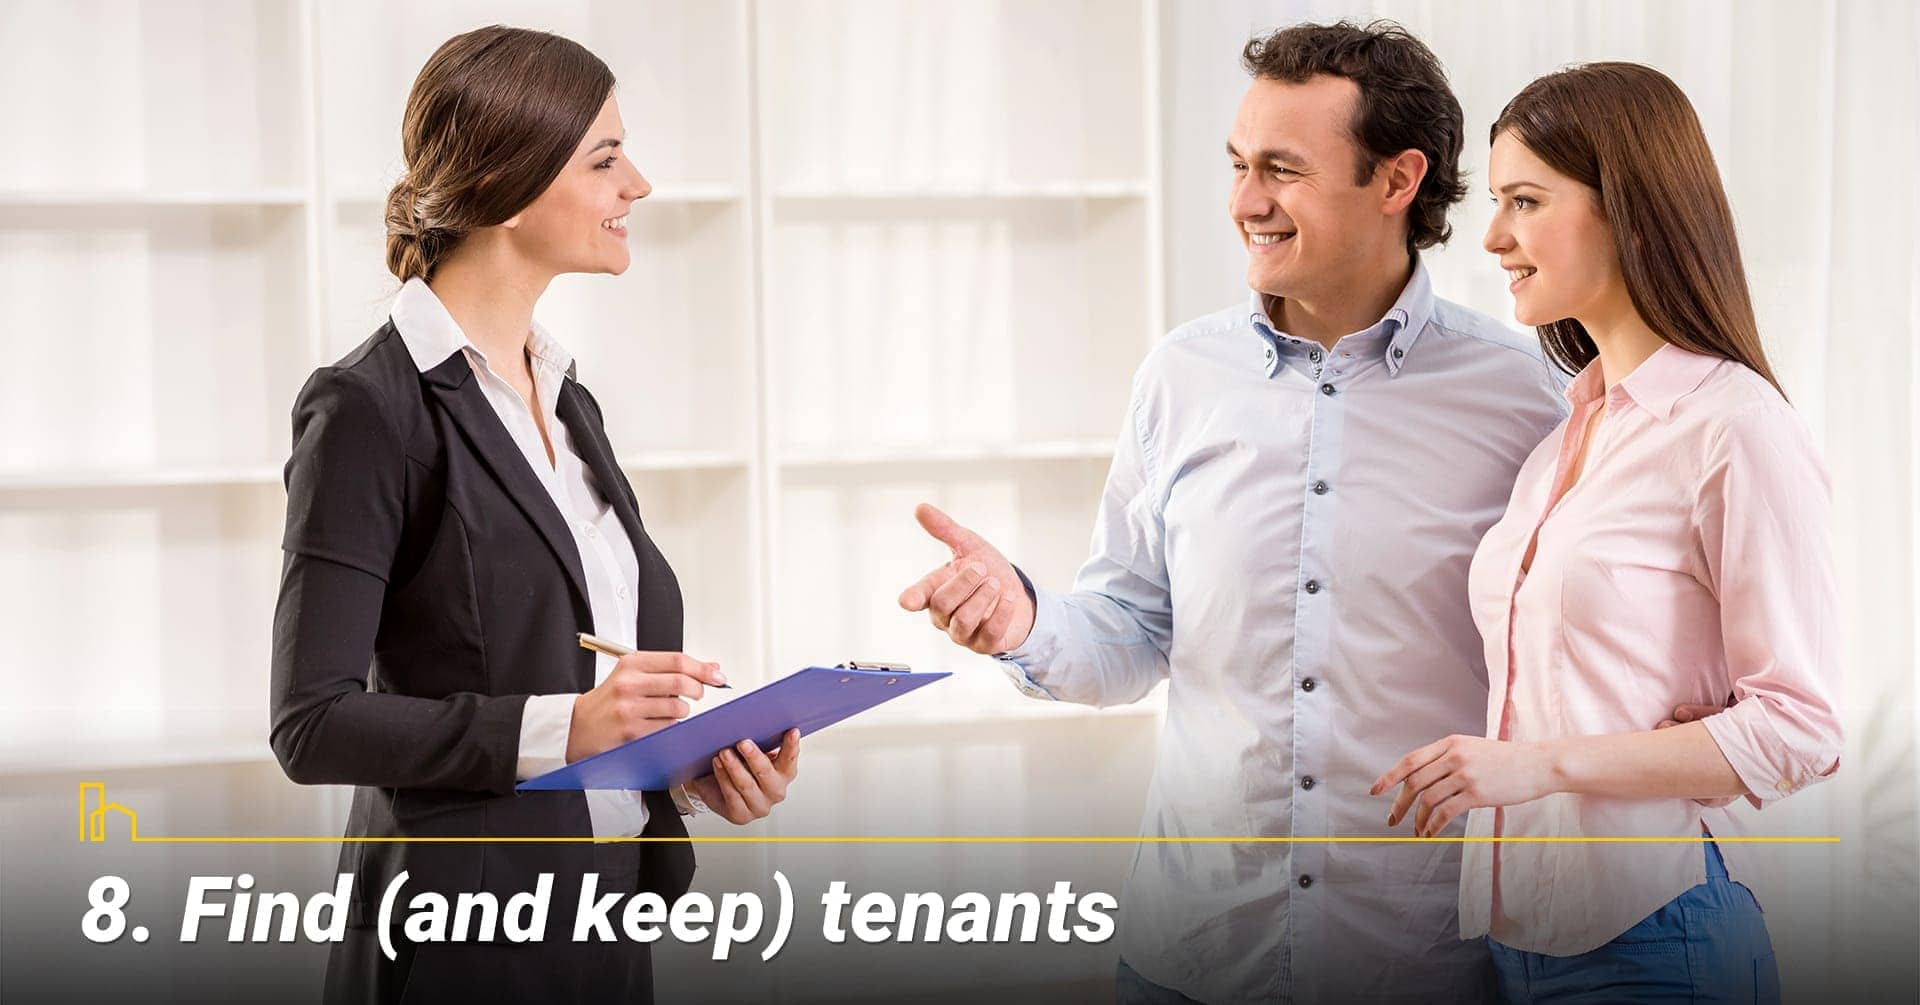 Find (and keep) tenants